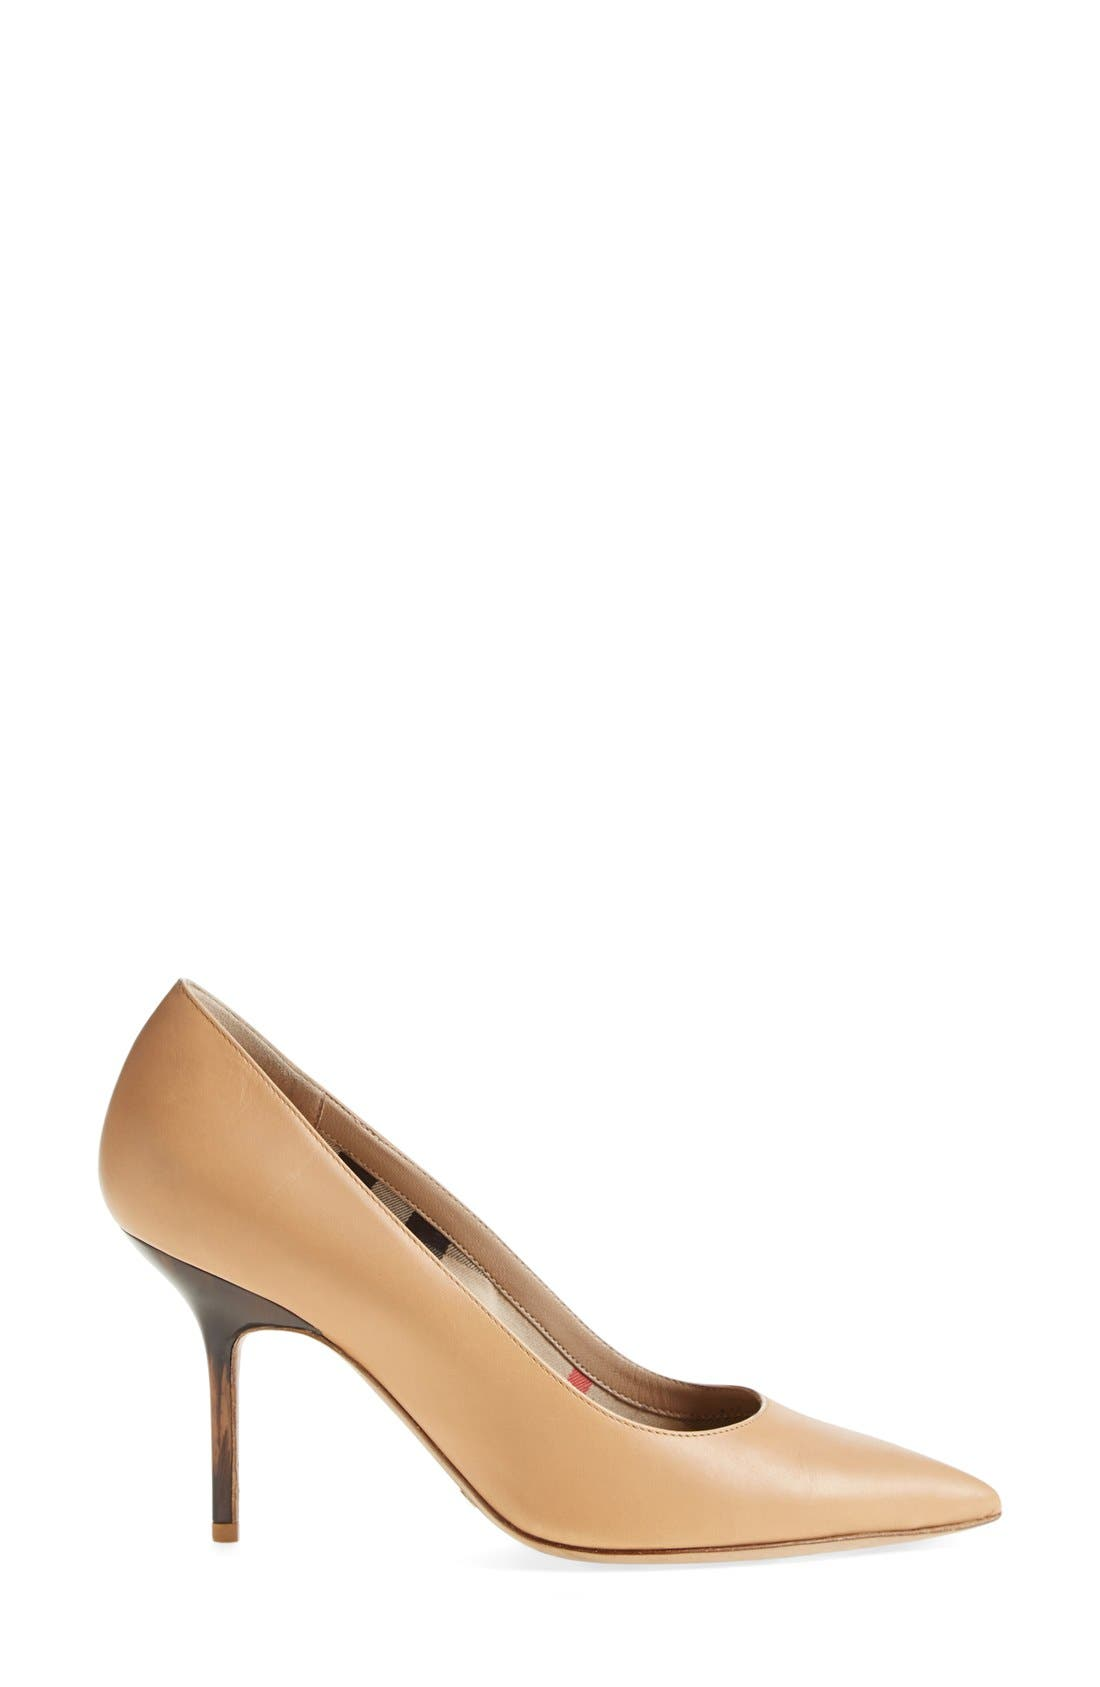 'Mawdesley' Pointy Toe Pump,                             Alternate thumbnail 4, color,                             250